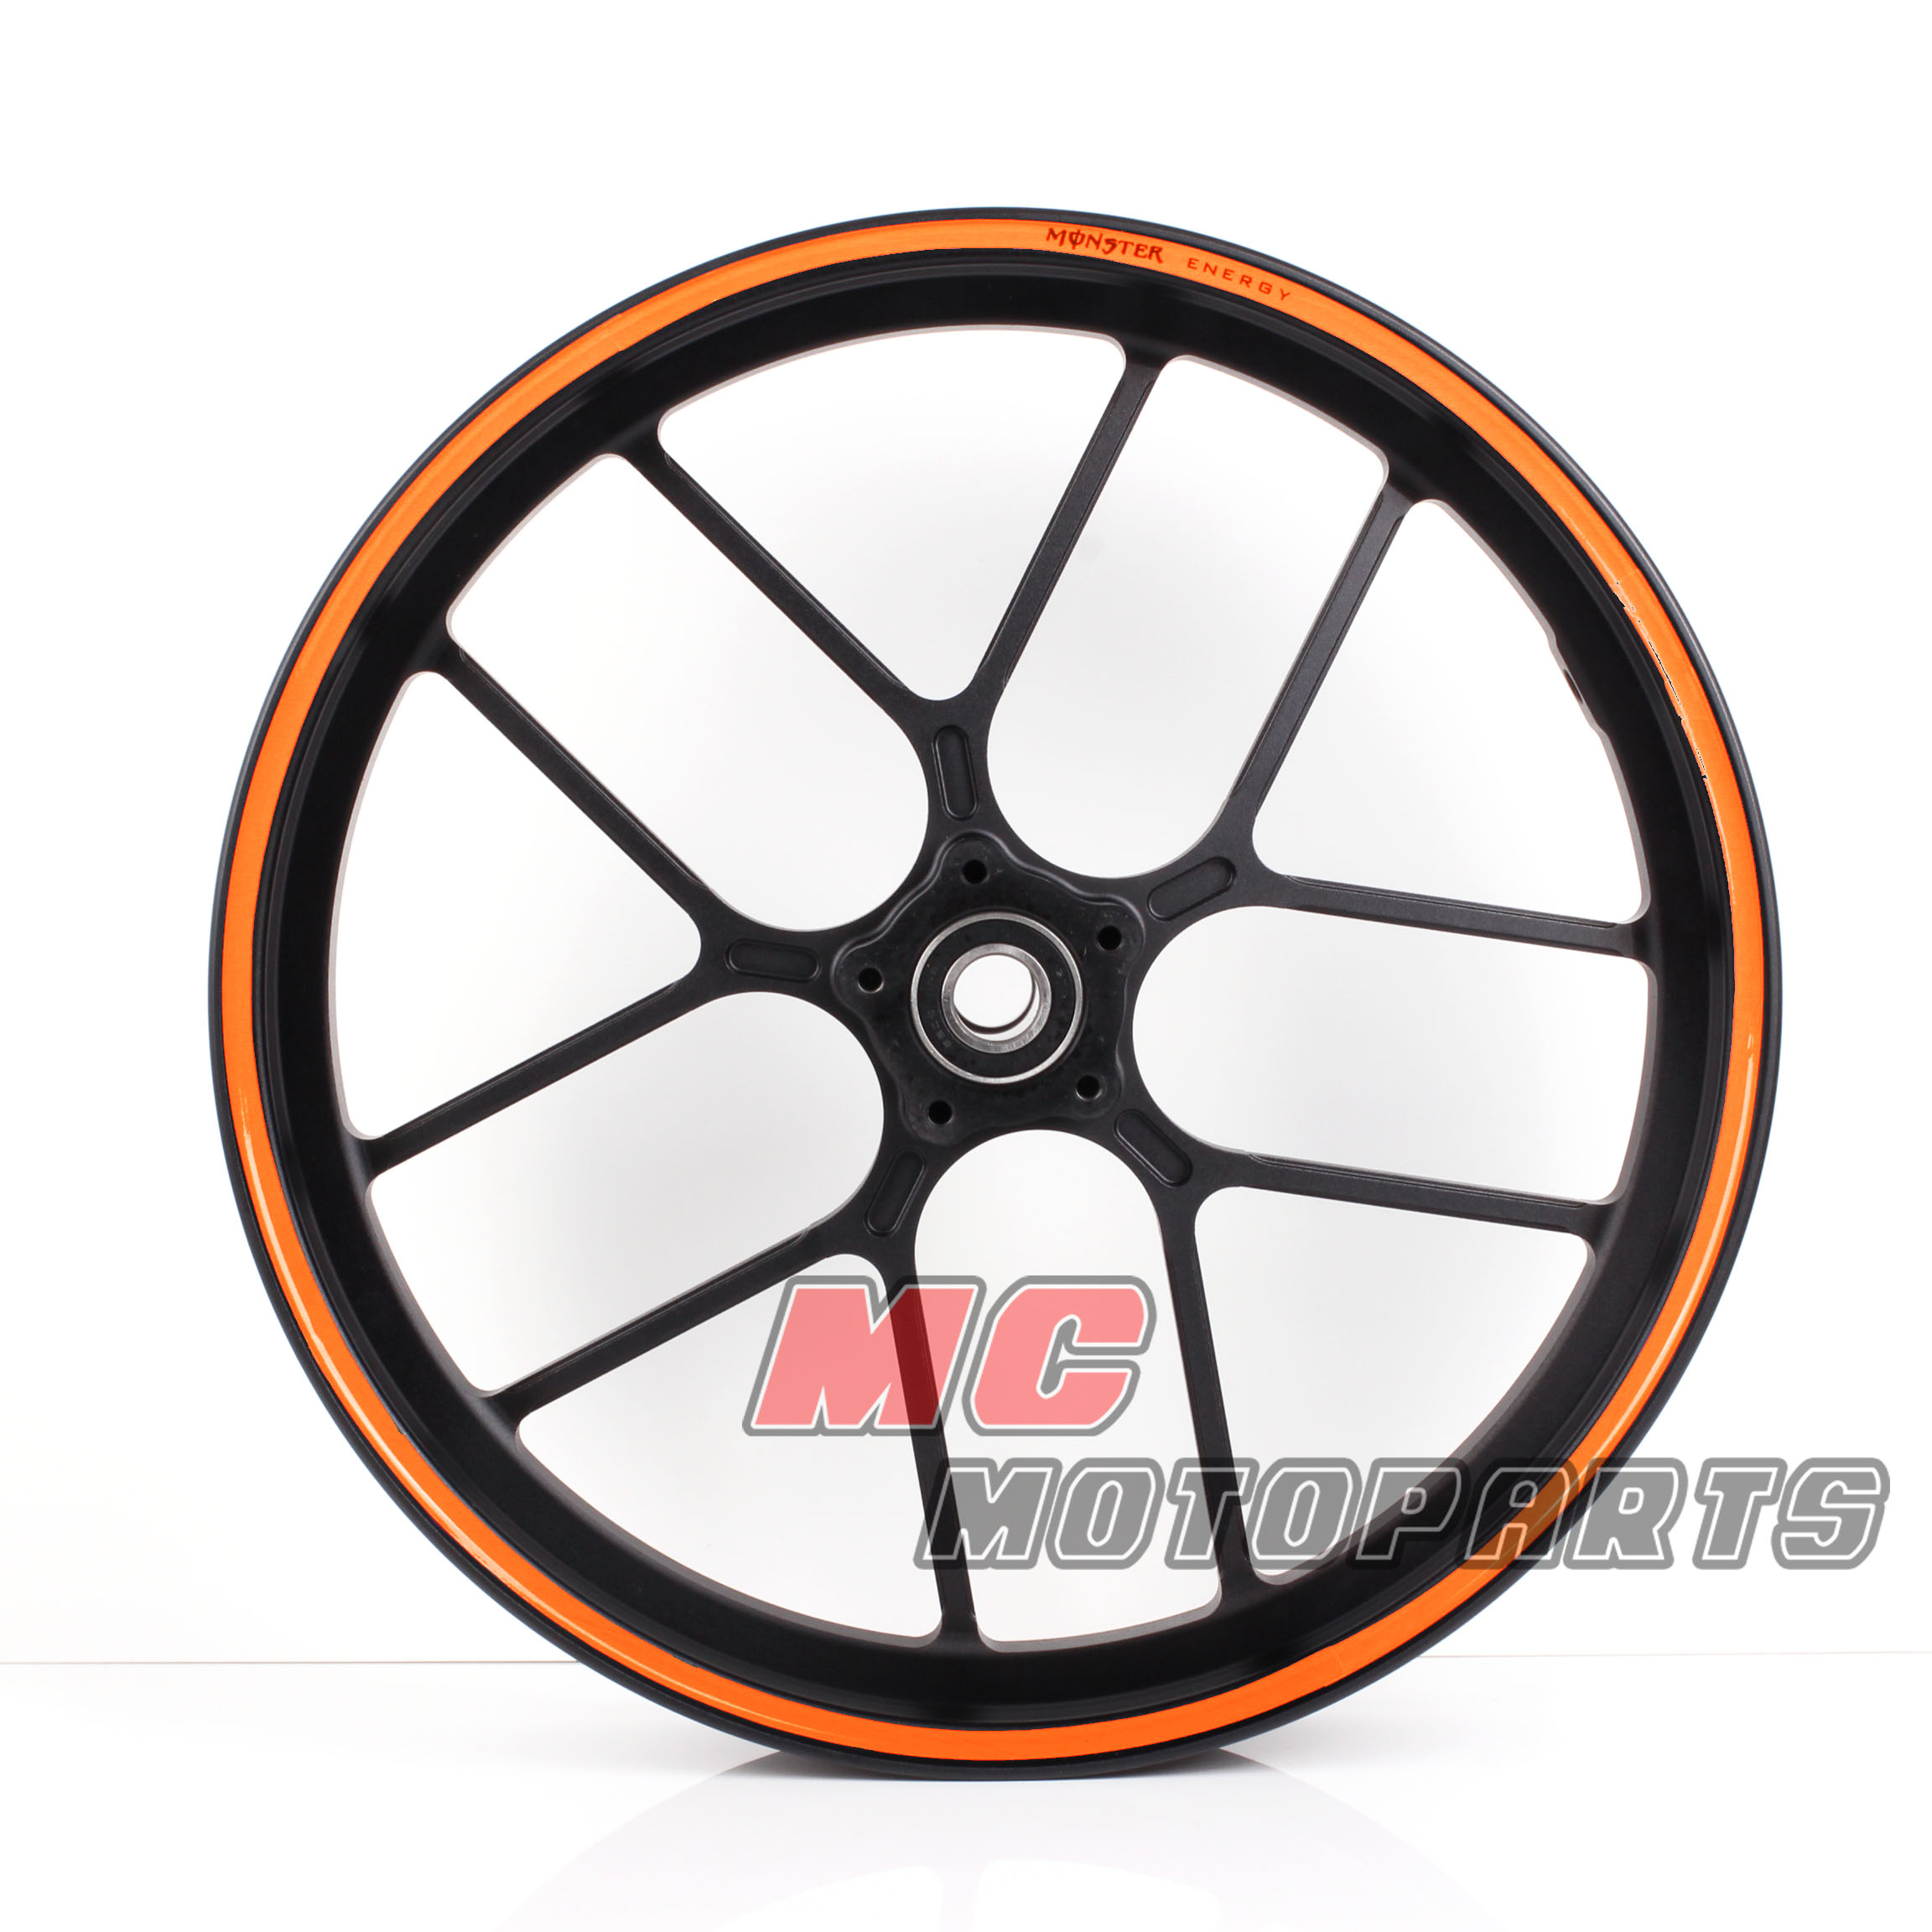 Orange Rim Sticker Decal Wheels 17 for Honda CBR 600 F2 F3 F4 F4i 900